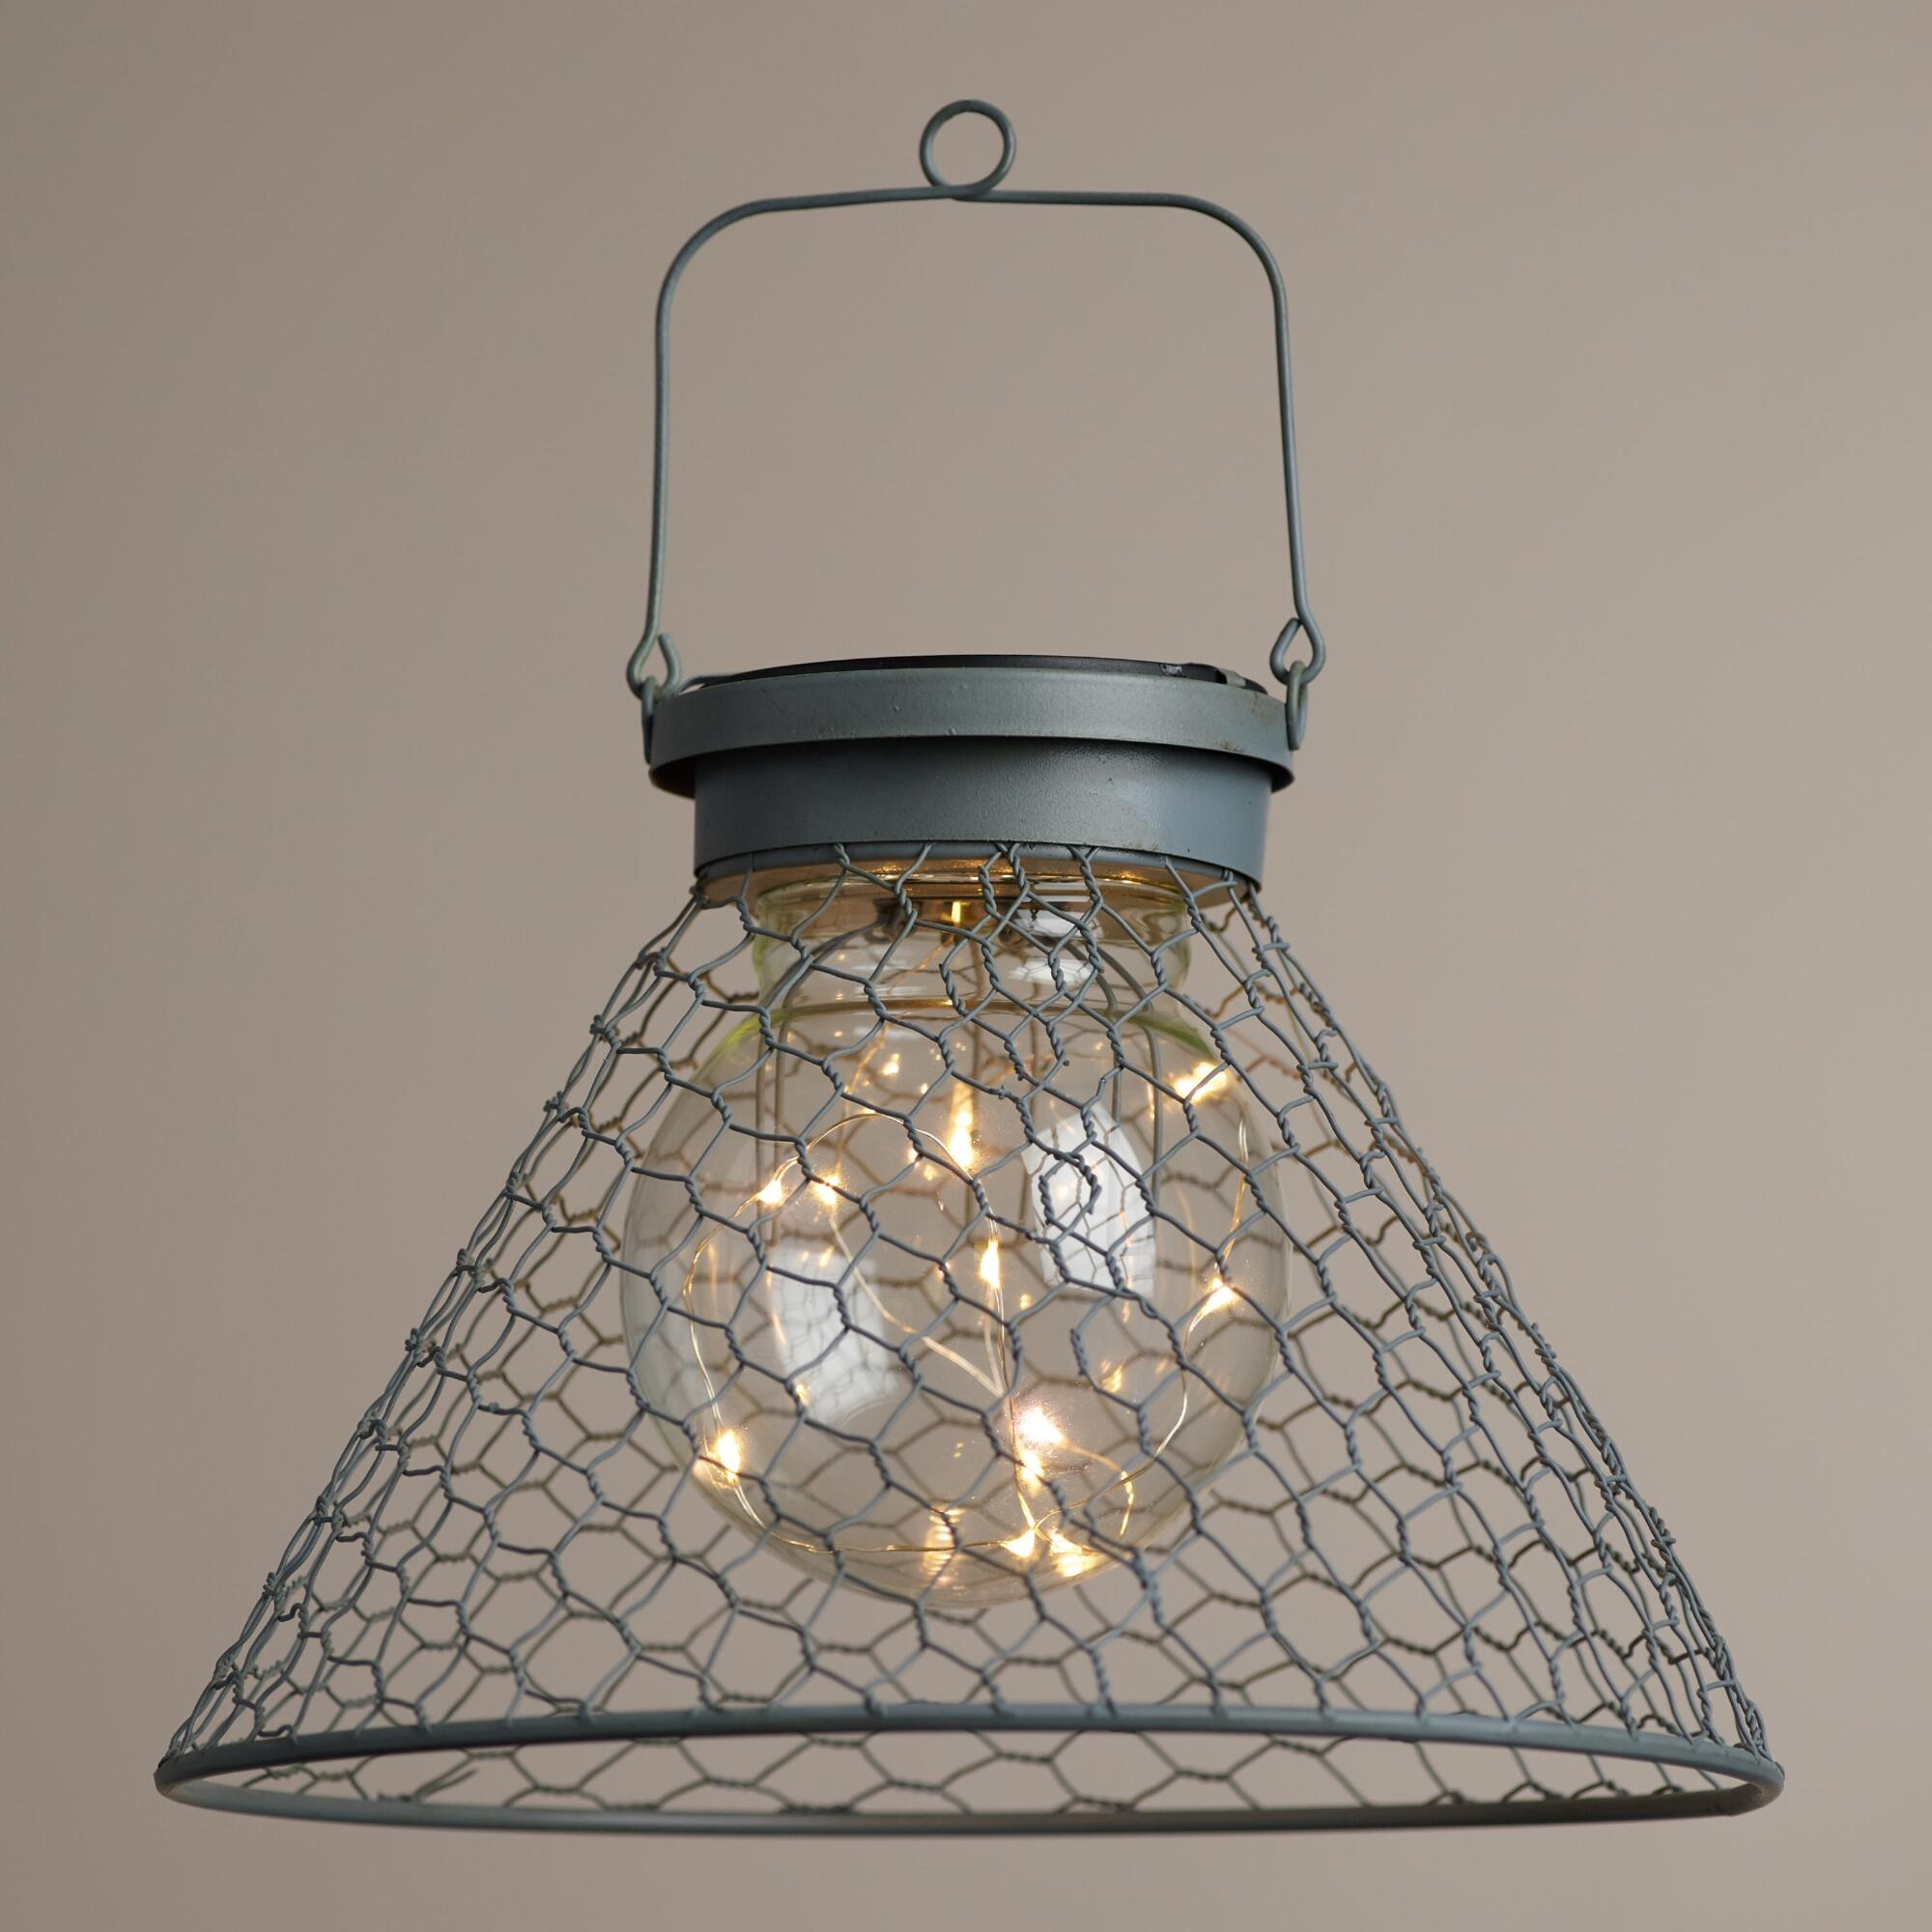 warm and string cage lantern incredible solar light concept lights white terrarium fairy uncategorized metal for led outdoor aflk my leds ideas